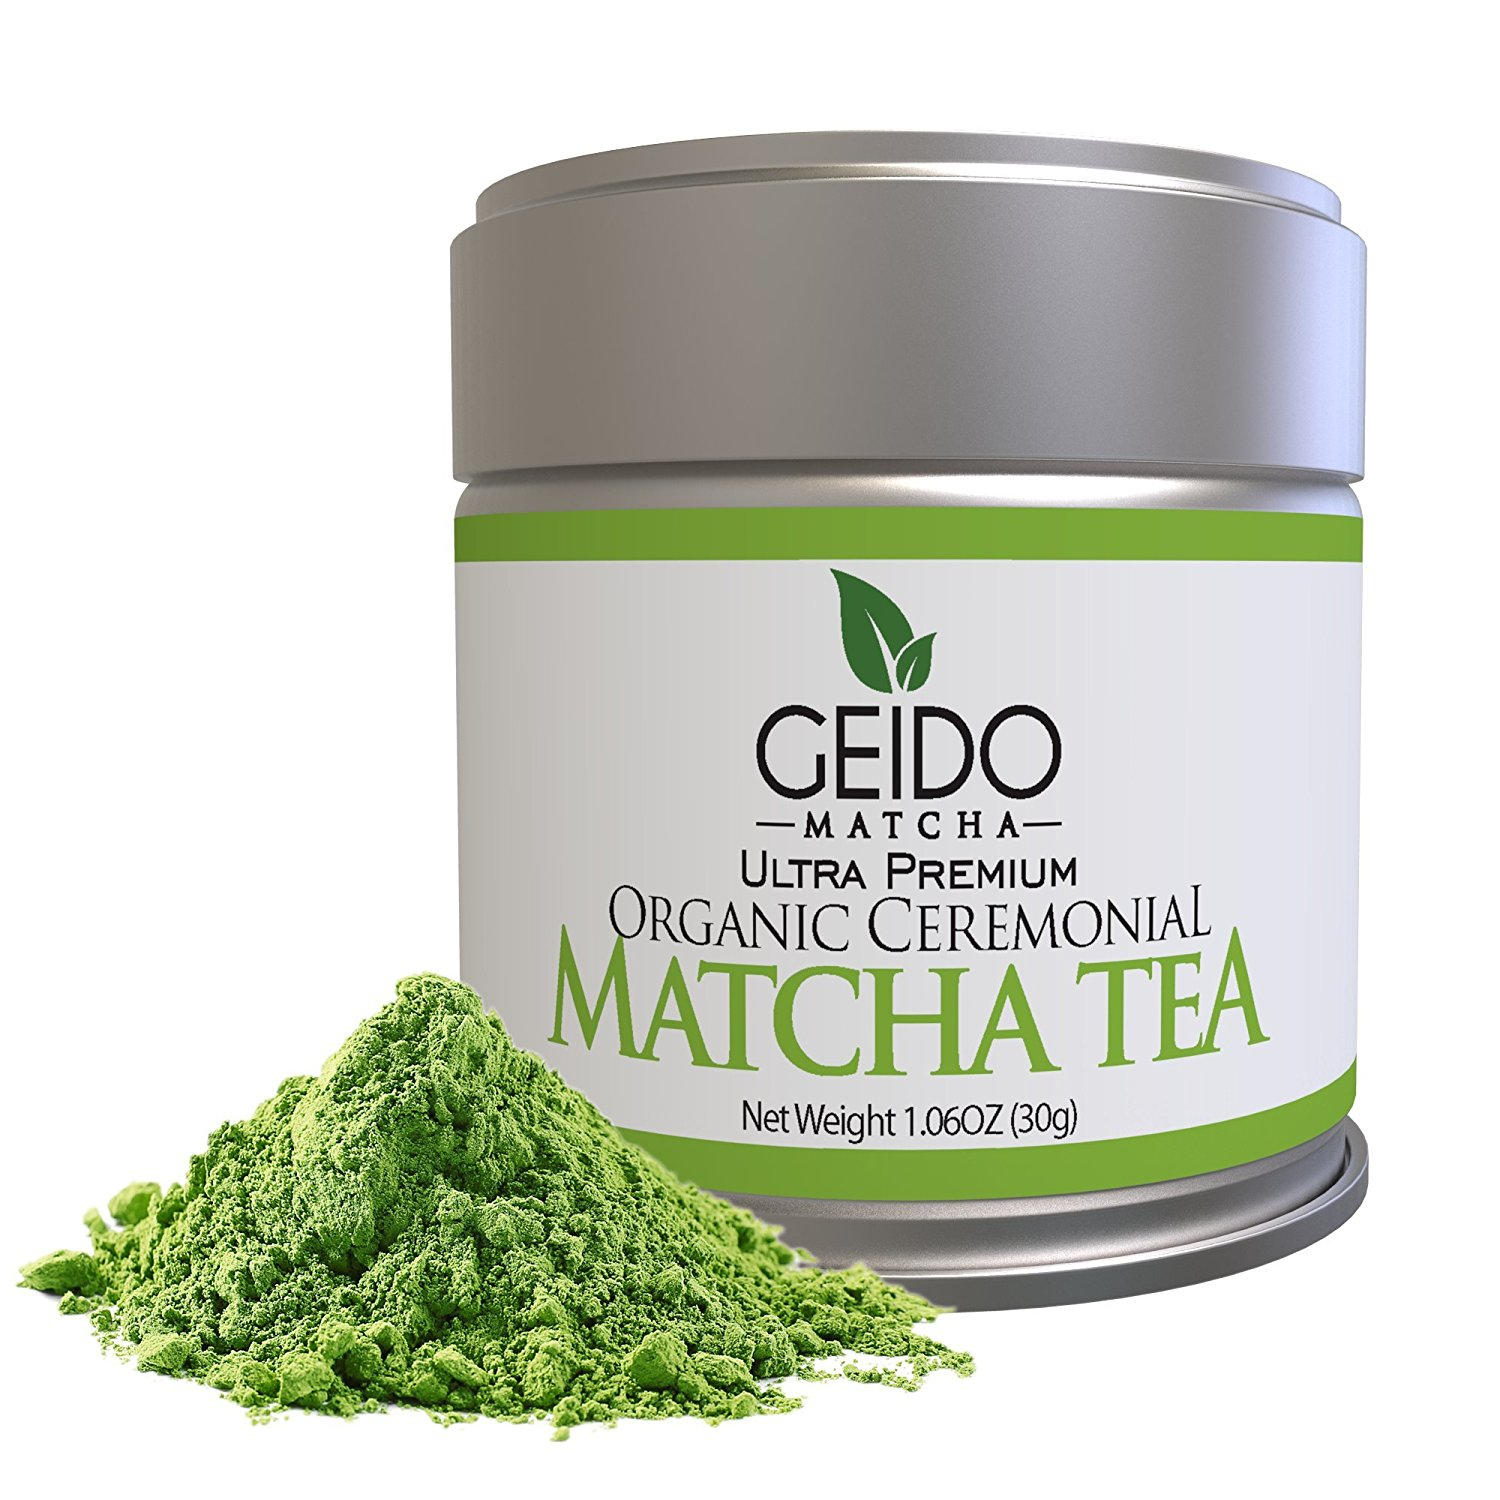 Geido Matcha Green Tea Powder - Premium